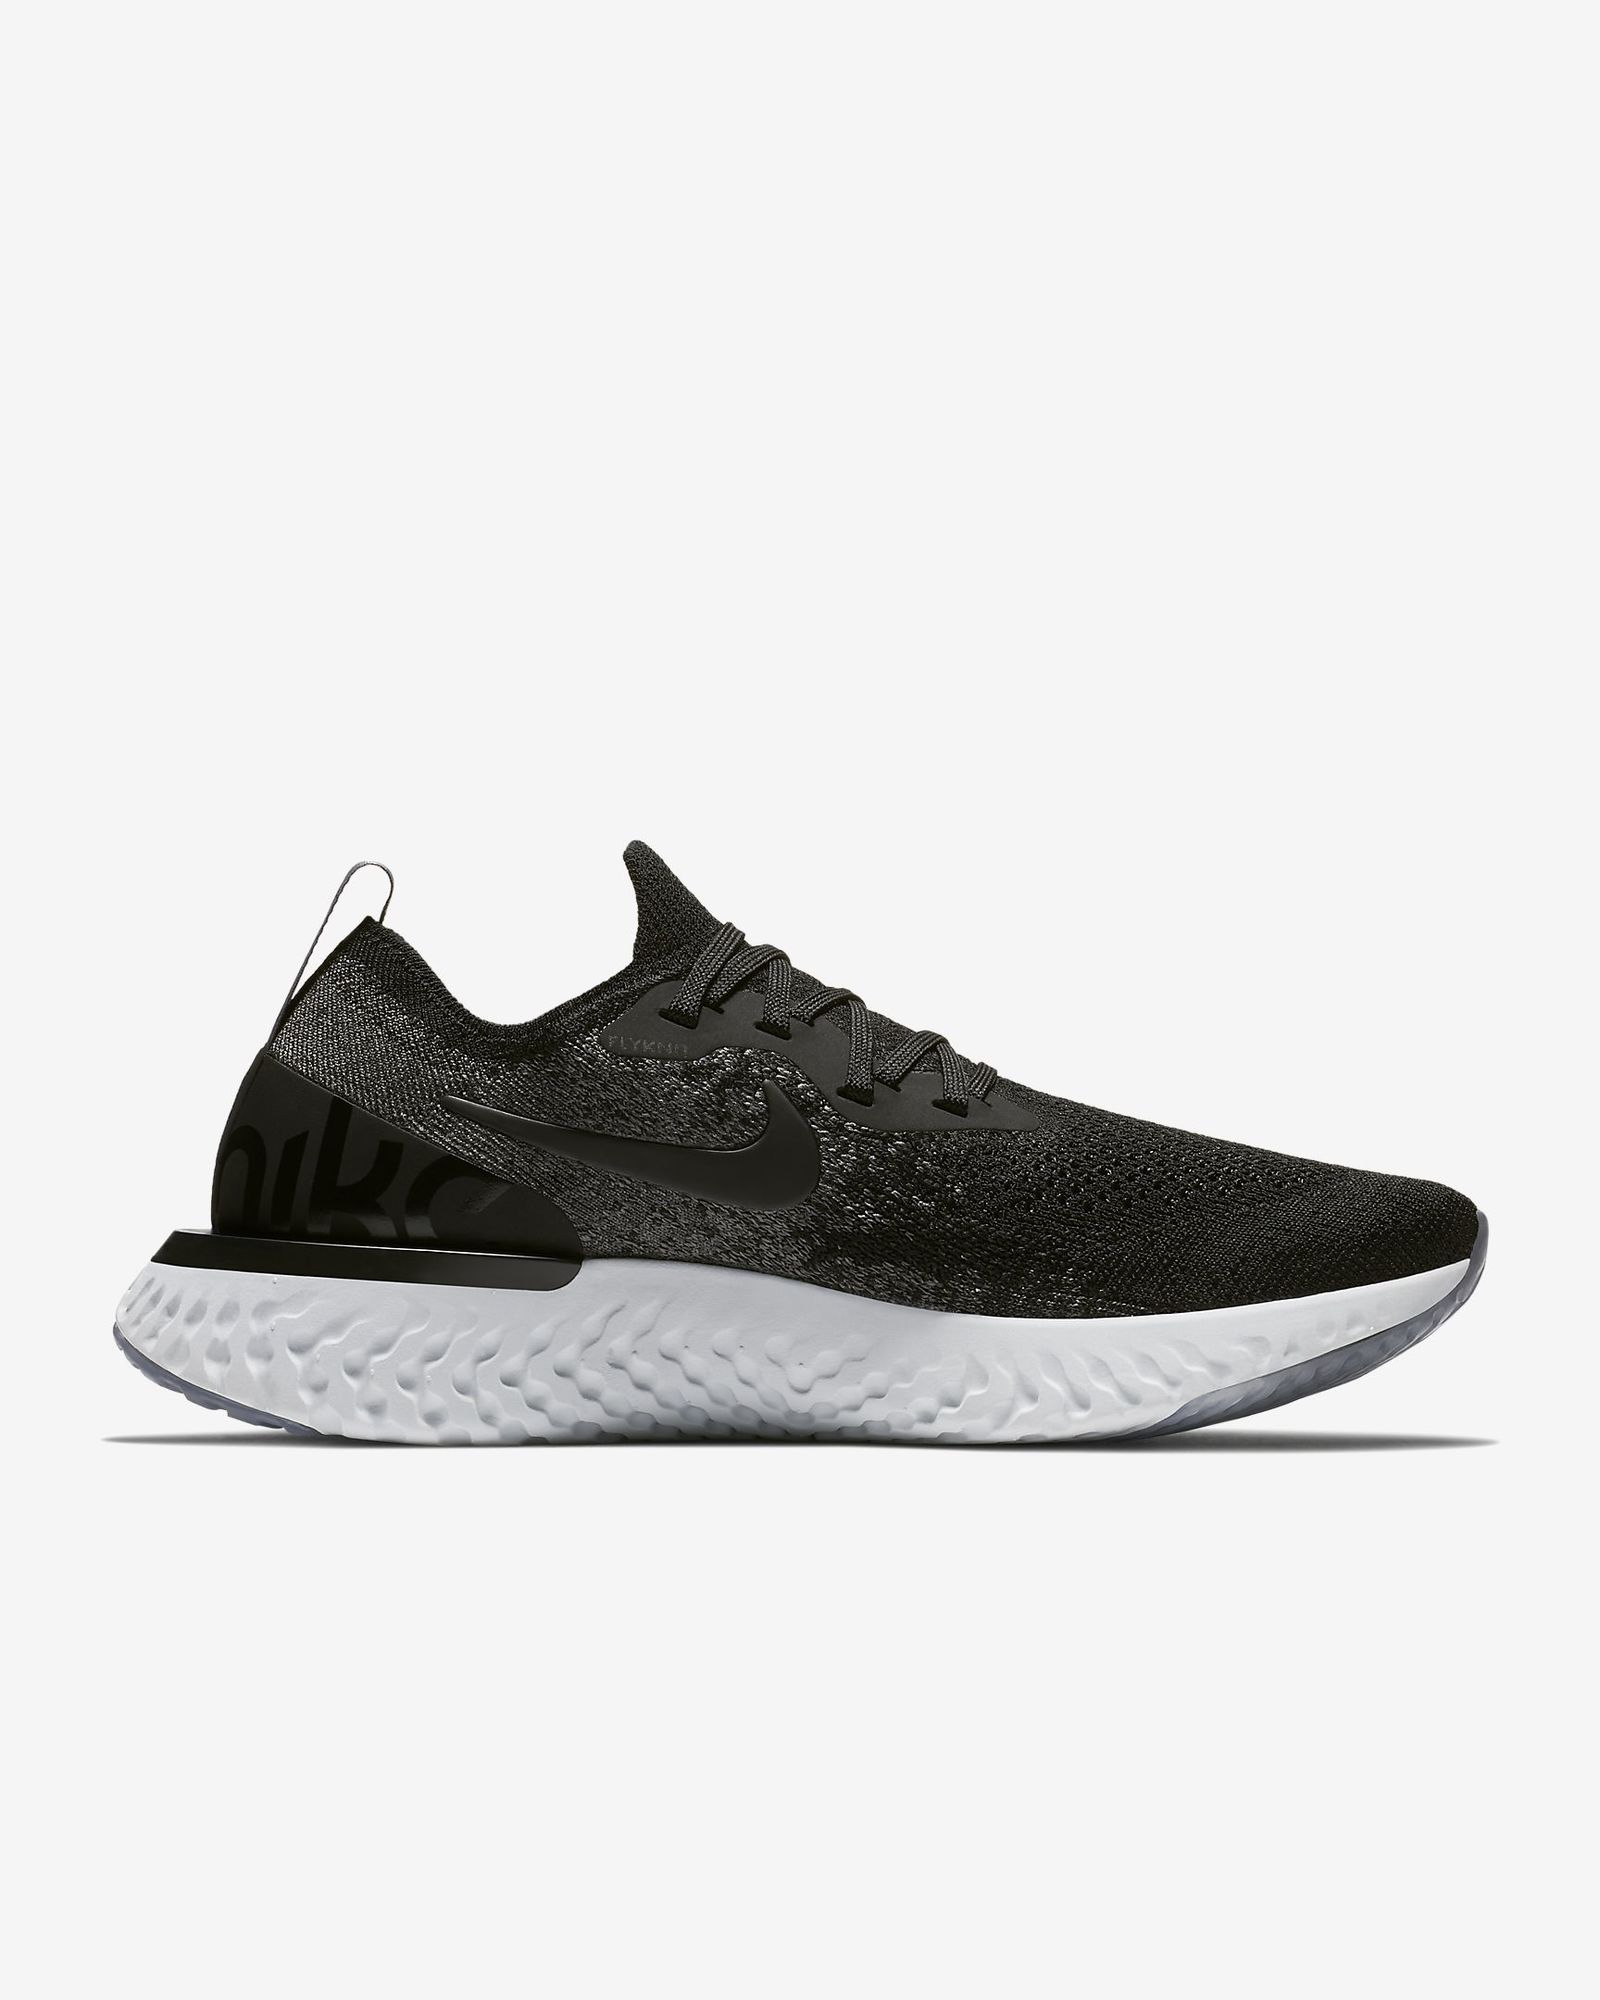 Nike Lady Epic React Flyknit in Schwarz Grau Platin